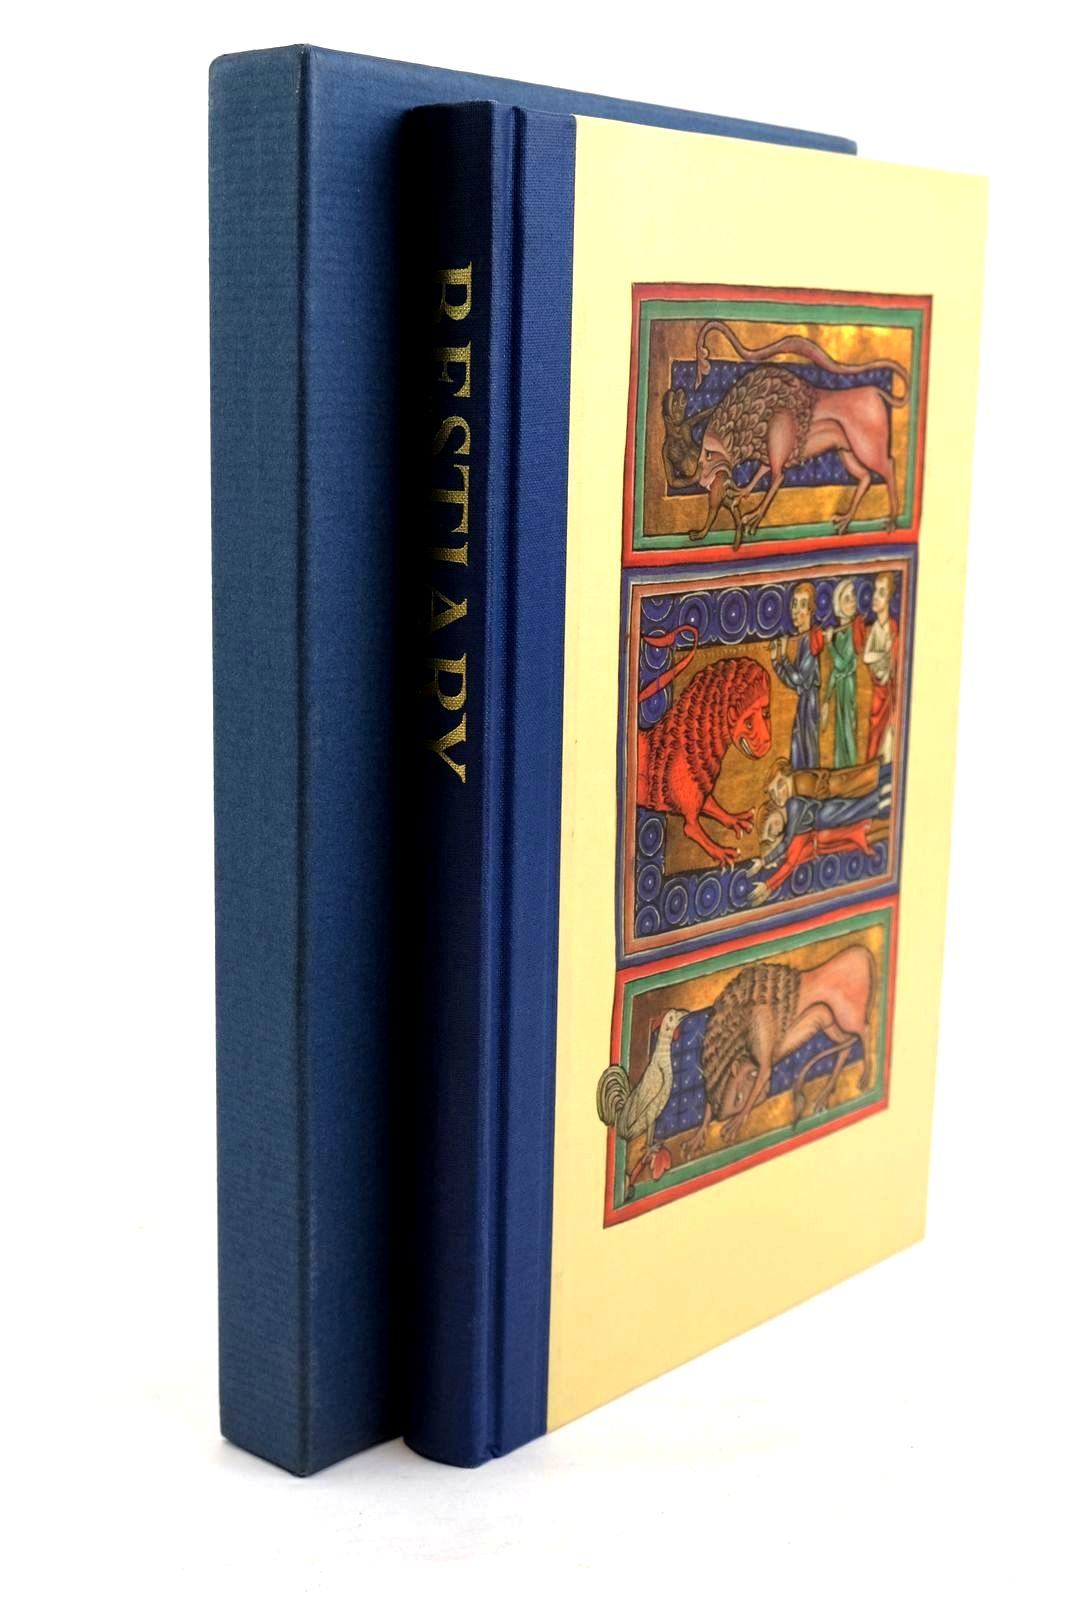 Photo of BESTIARY written by Barber, Richard published by Folio Society (STOCK CODE: 1320224)  for sale by Stella & Rose's Books